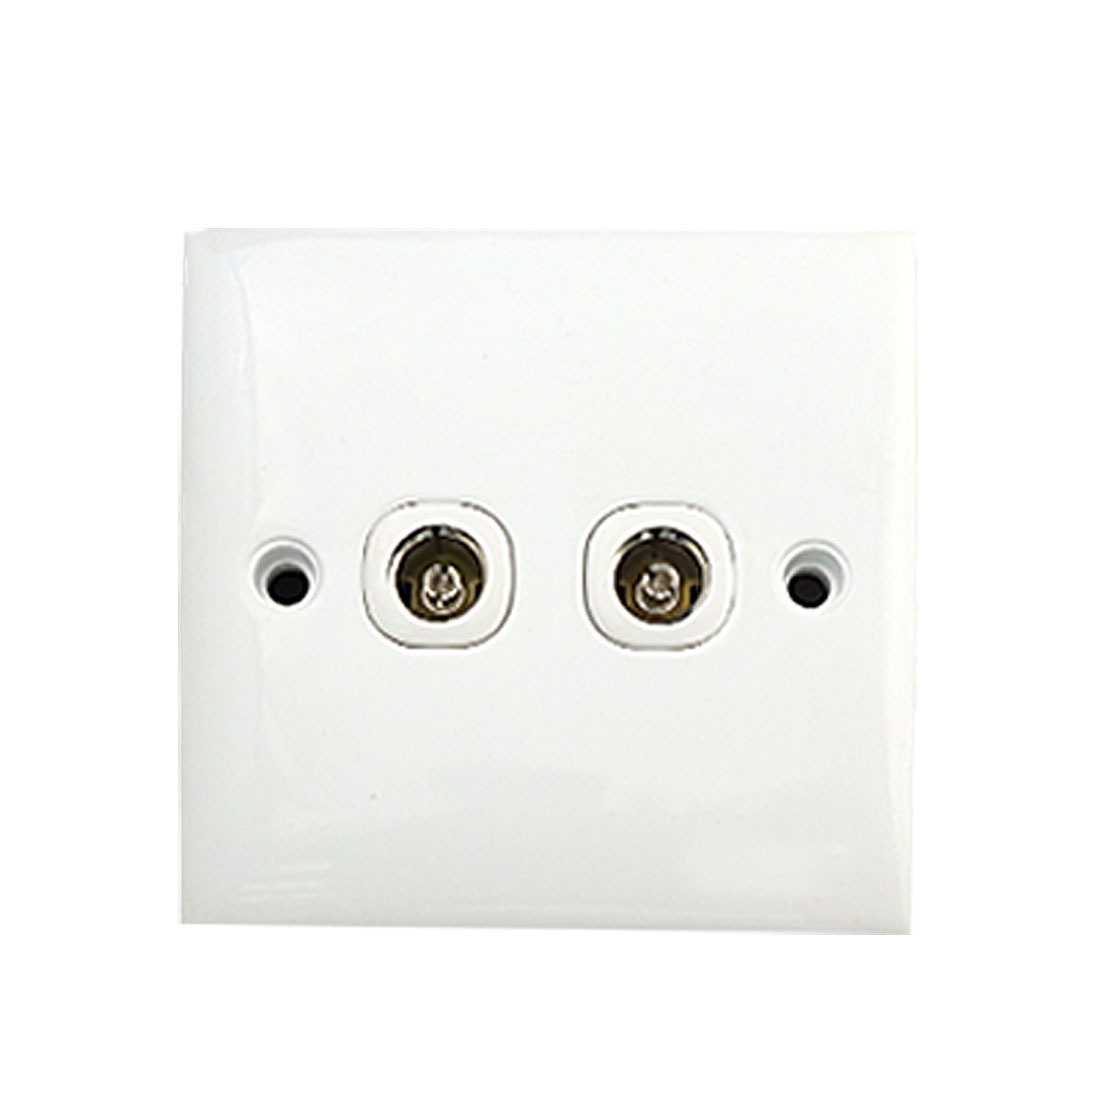 AC 250V 10A 2-Gang PAL Female Jack TV Aerial Antenna Wall Plate Outlet